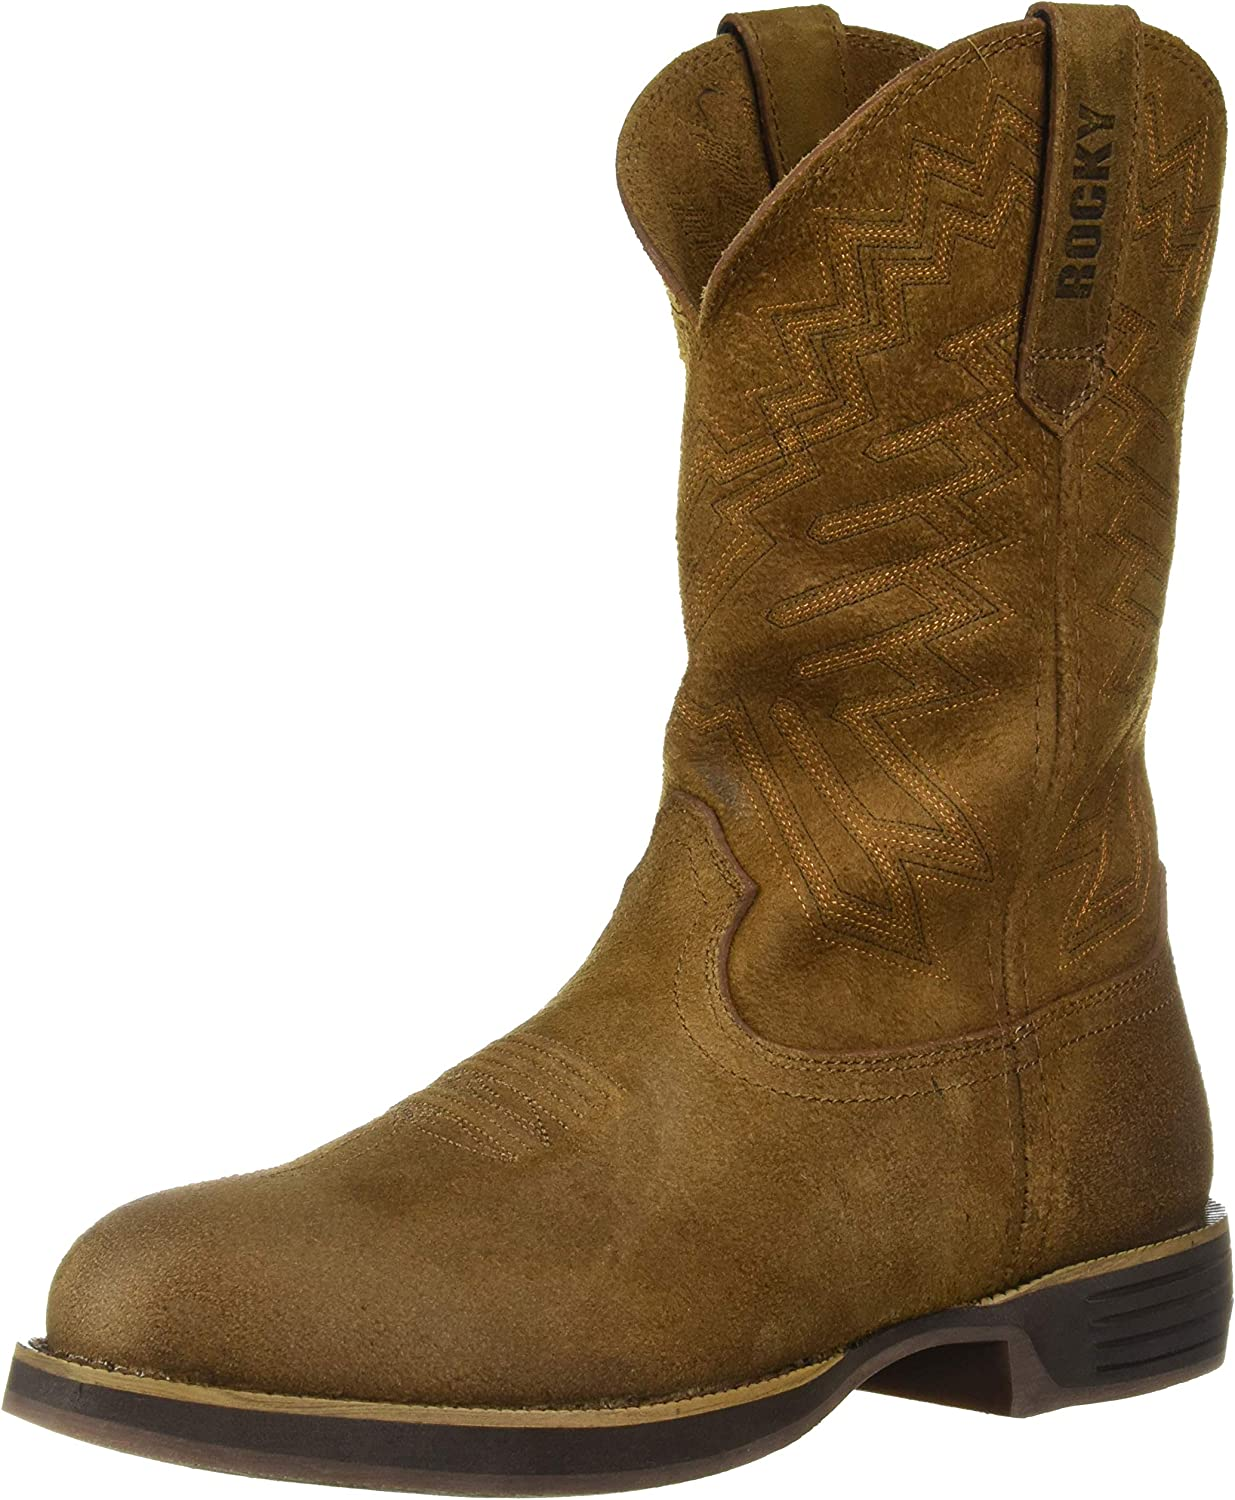 Rocky Men's Renegade Max 61% OFF Western Boot Limited price